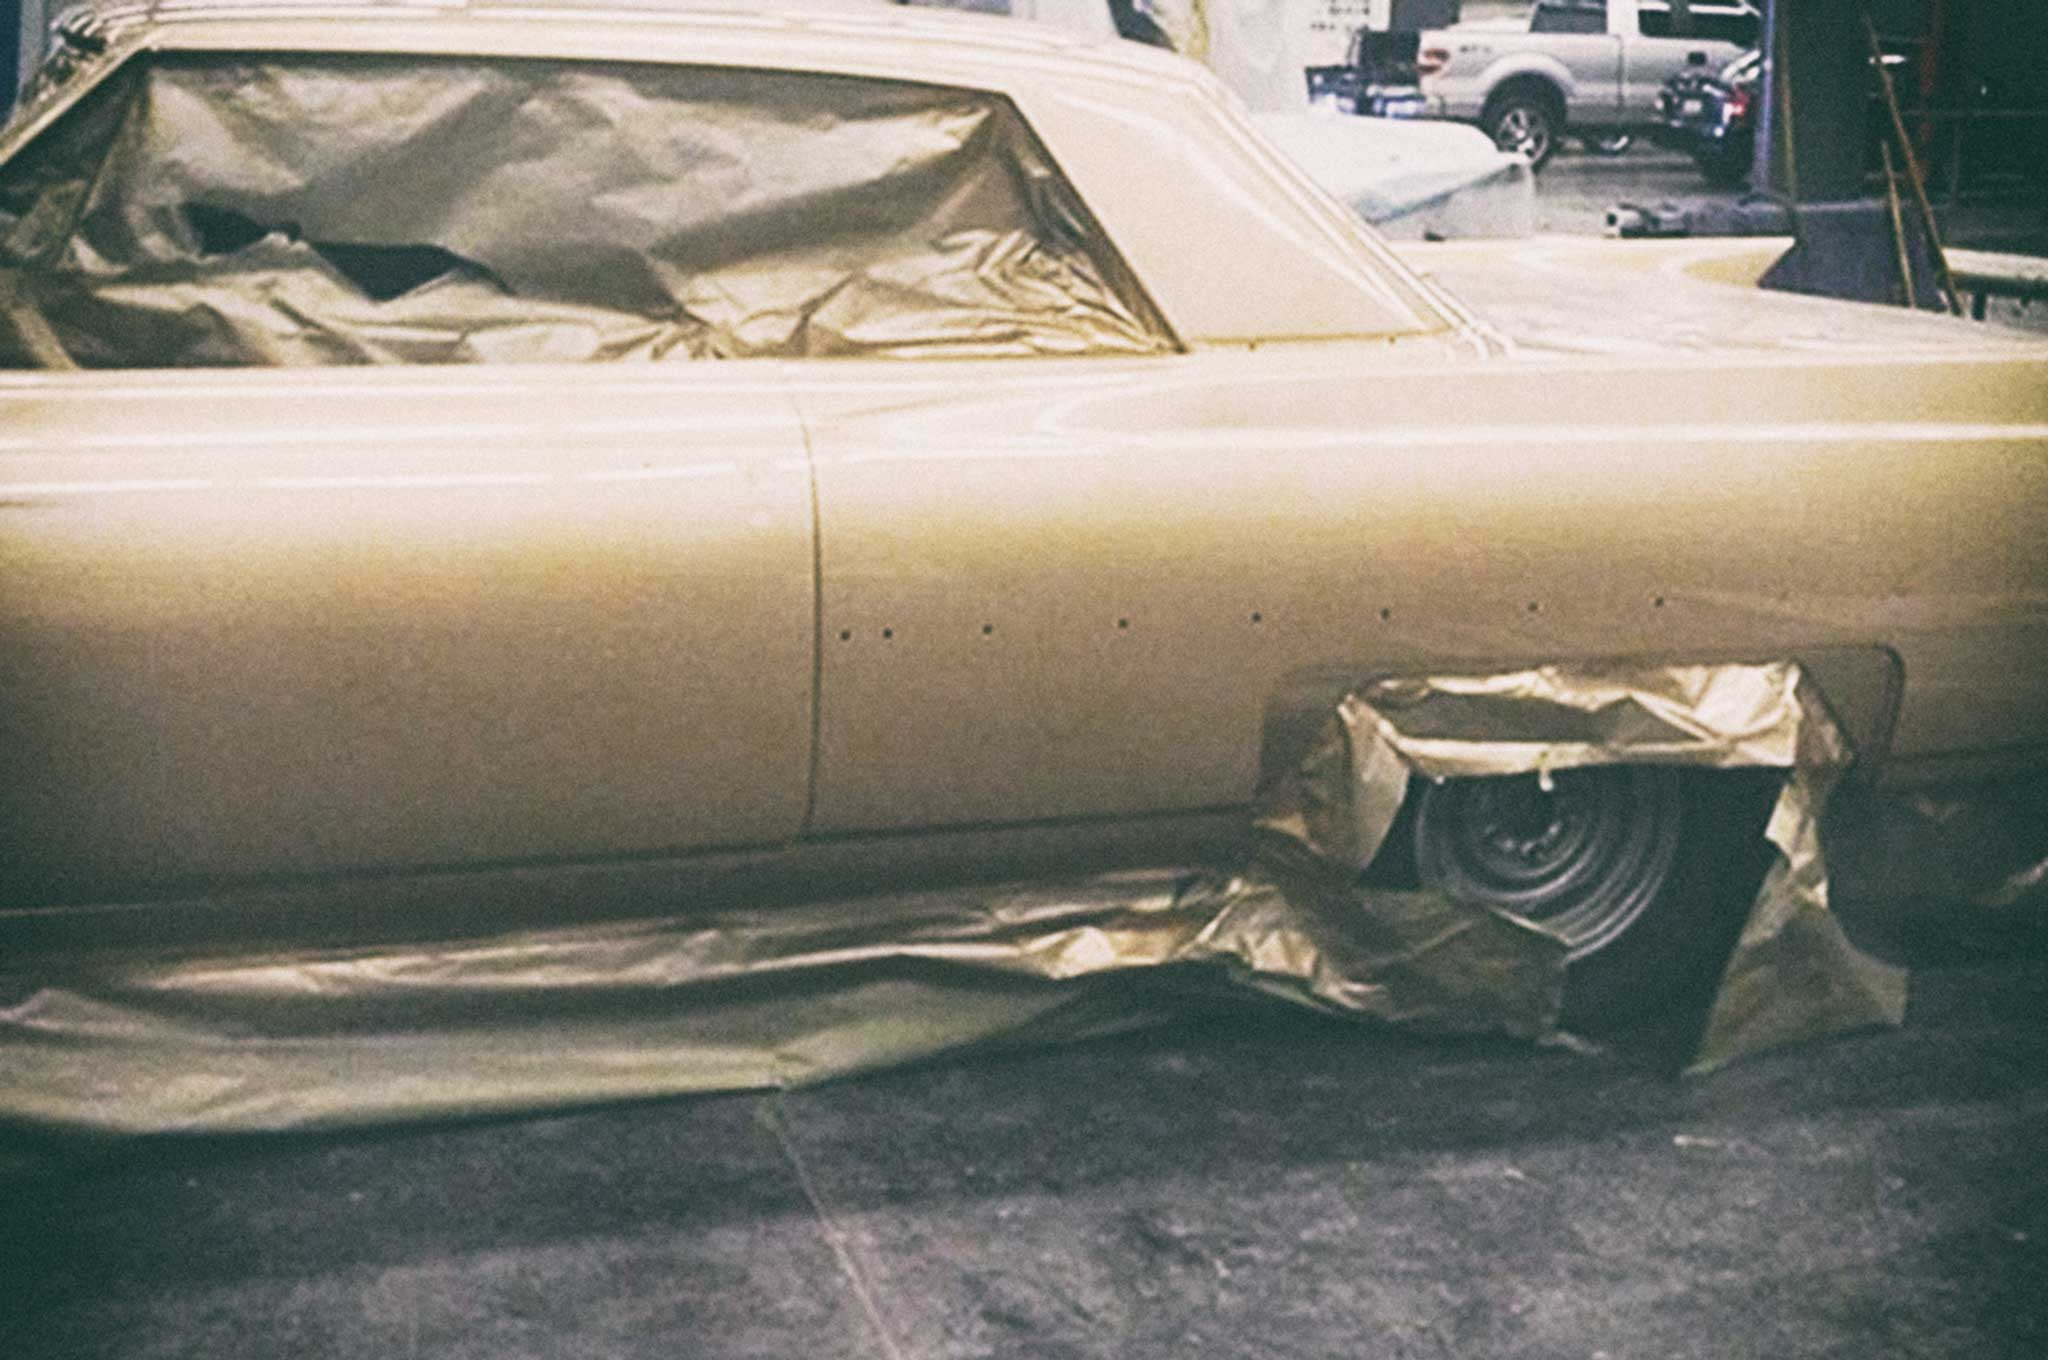 painting our 64 cadillac body painting 018